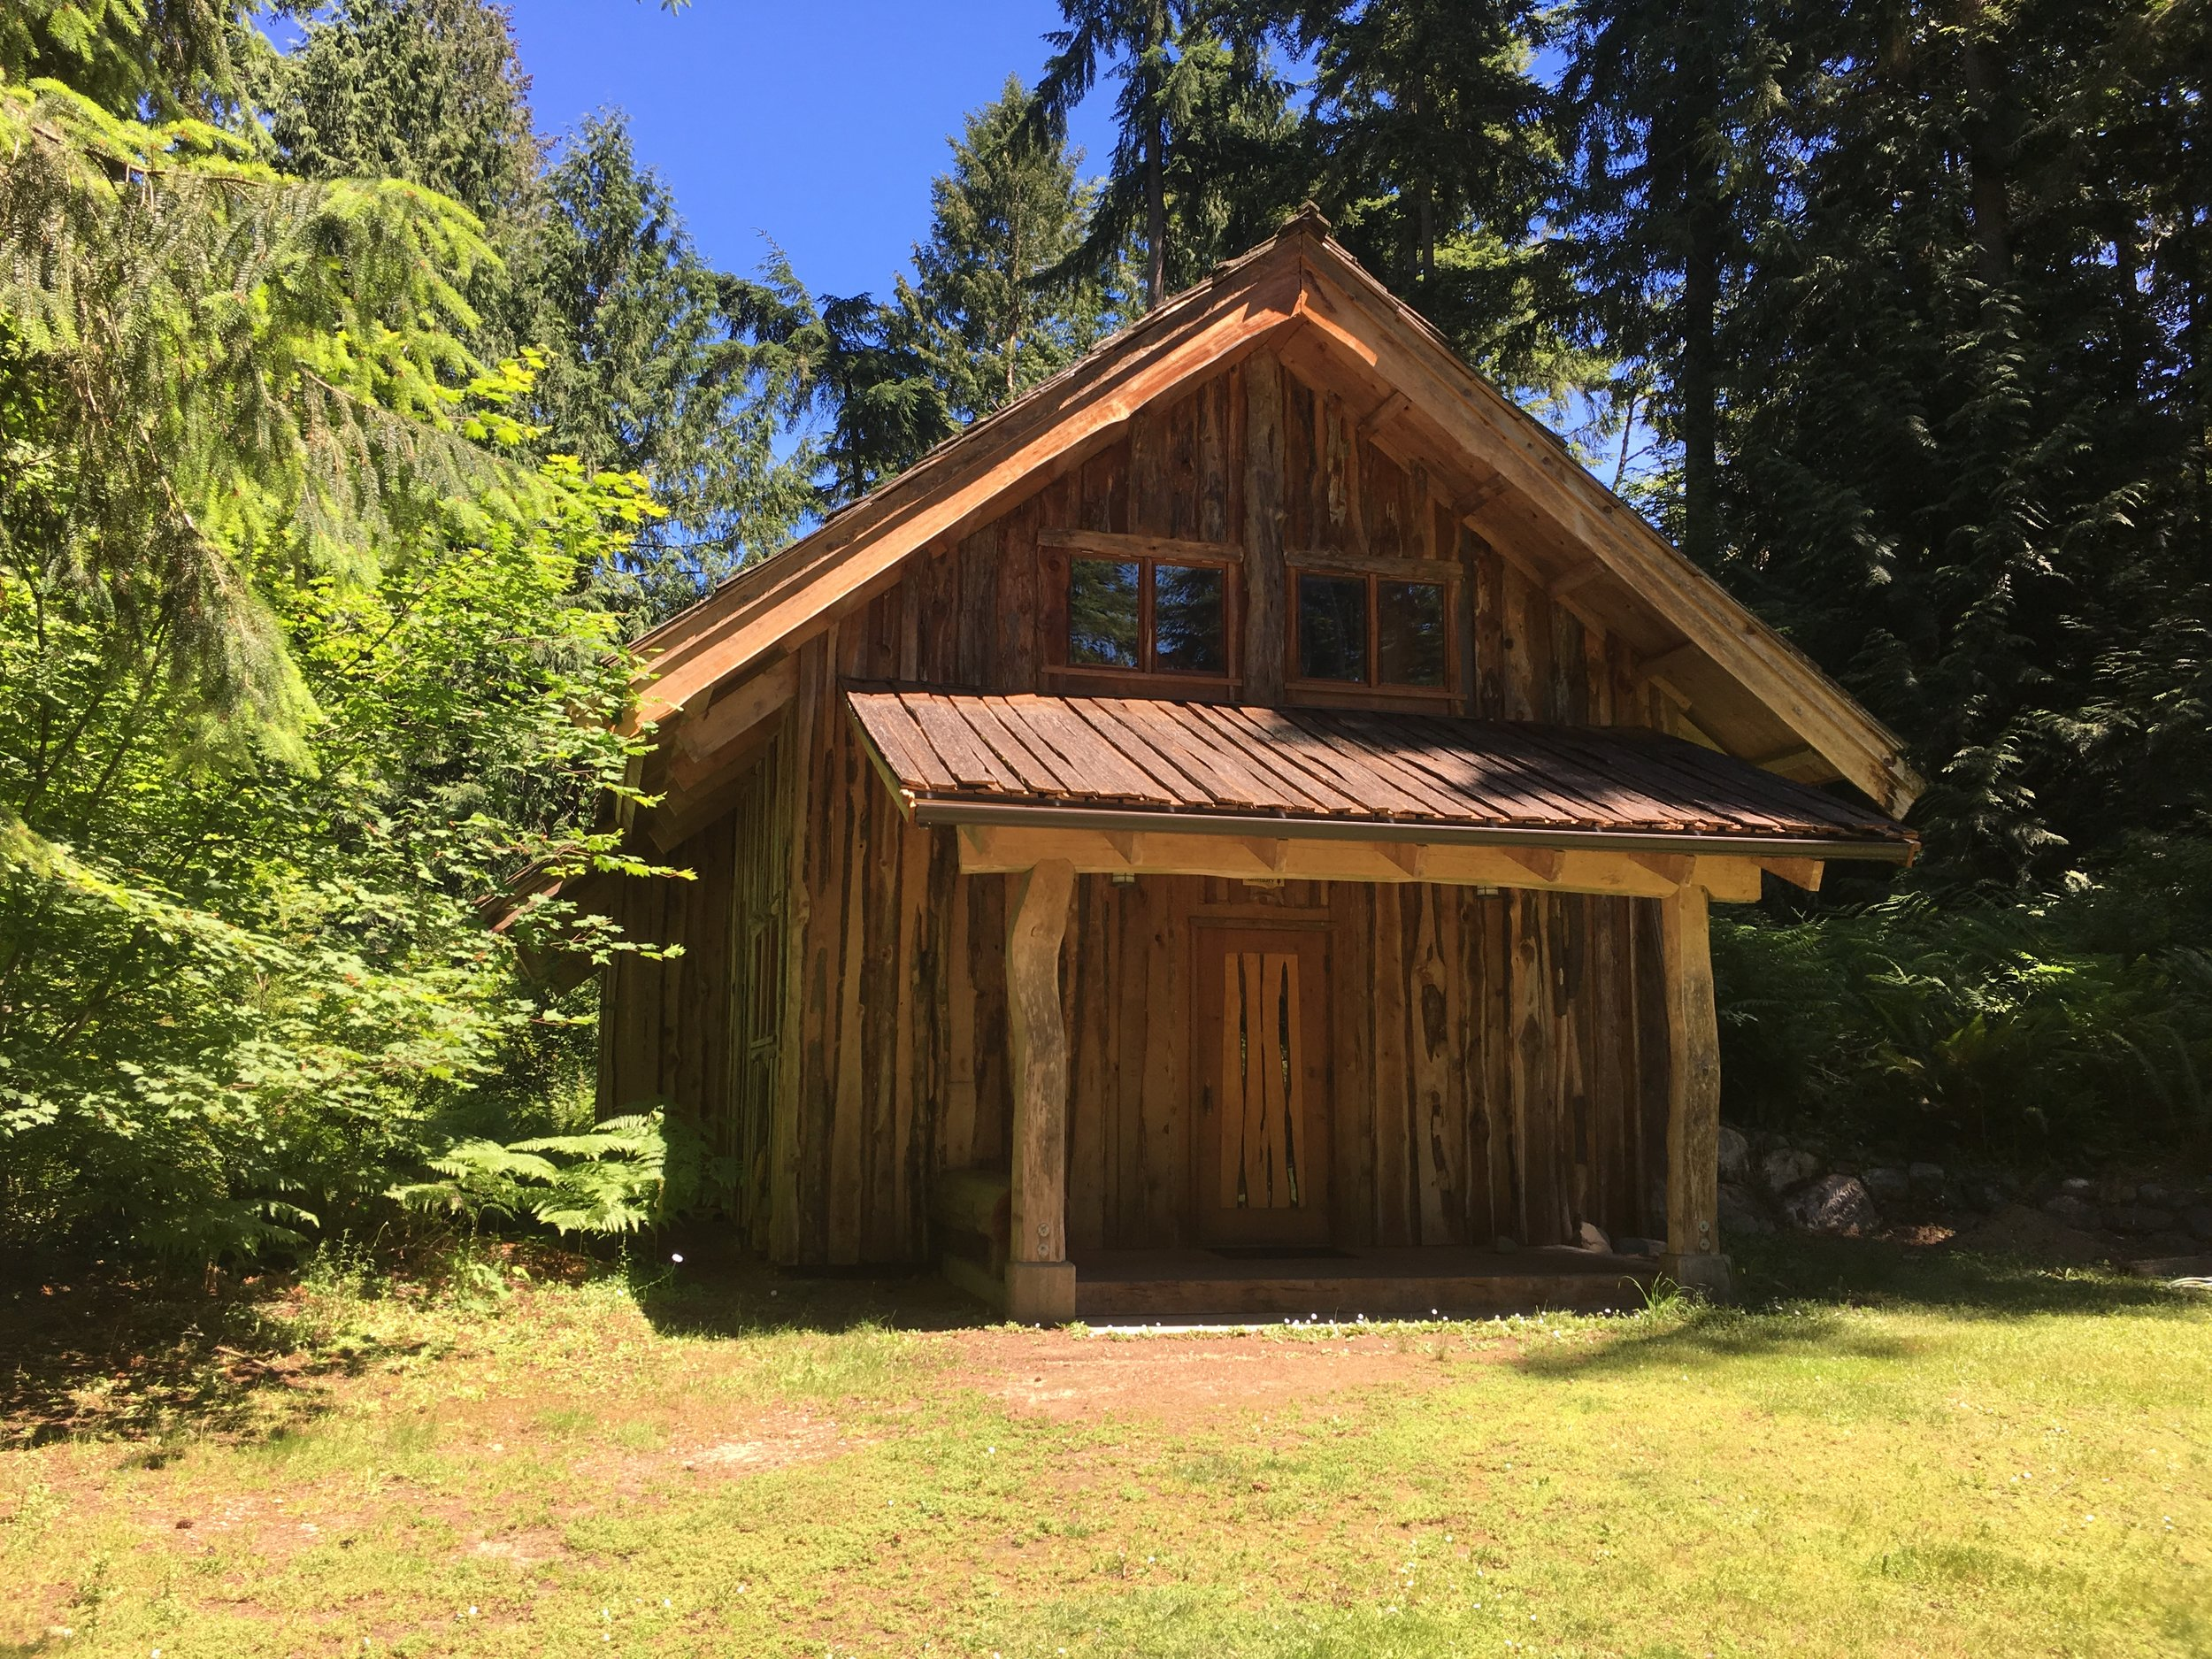 The Whidbey Institute sanctuary